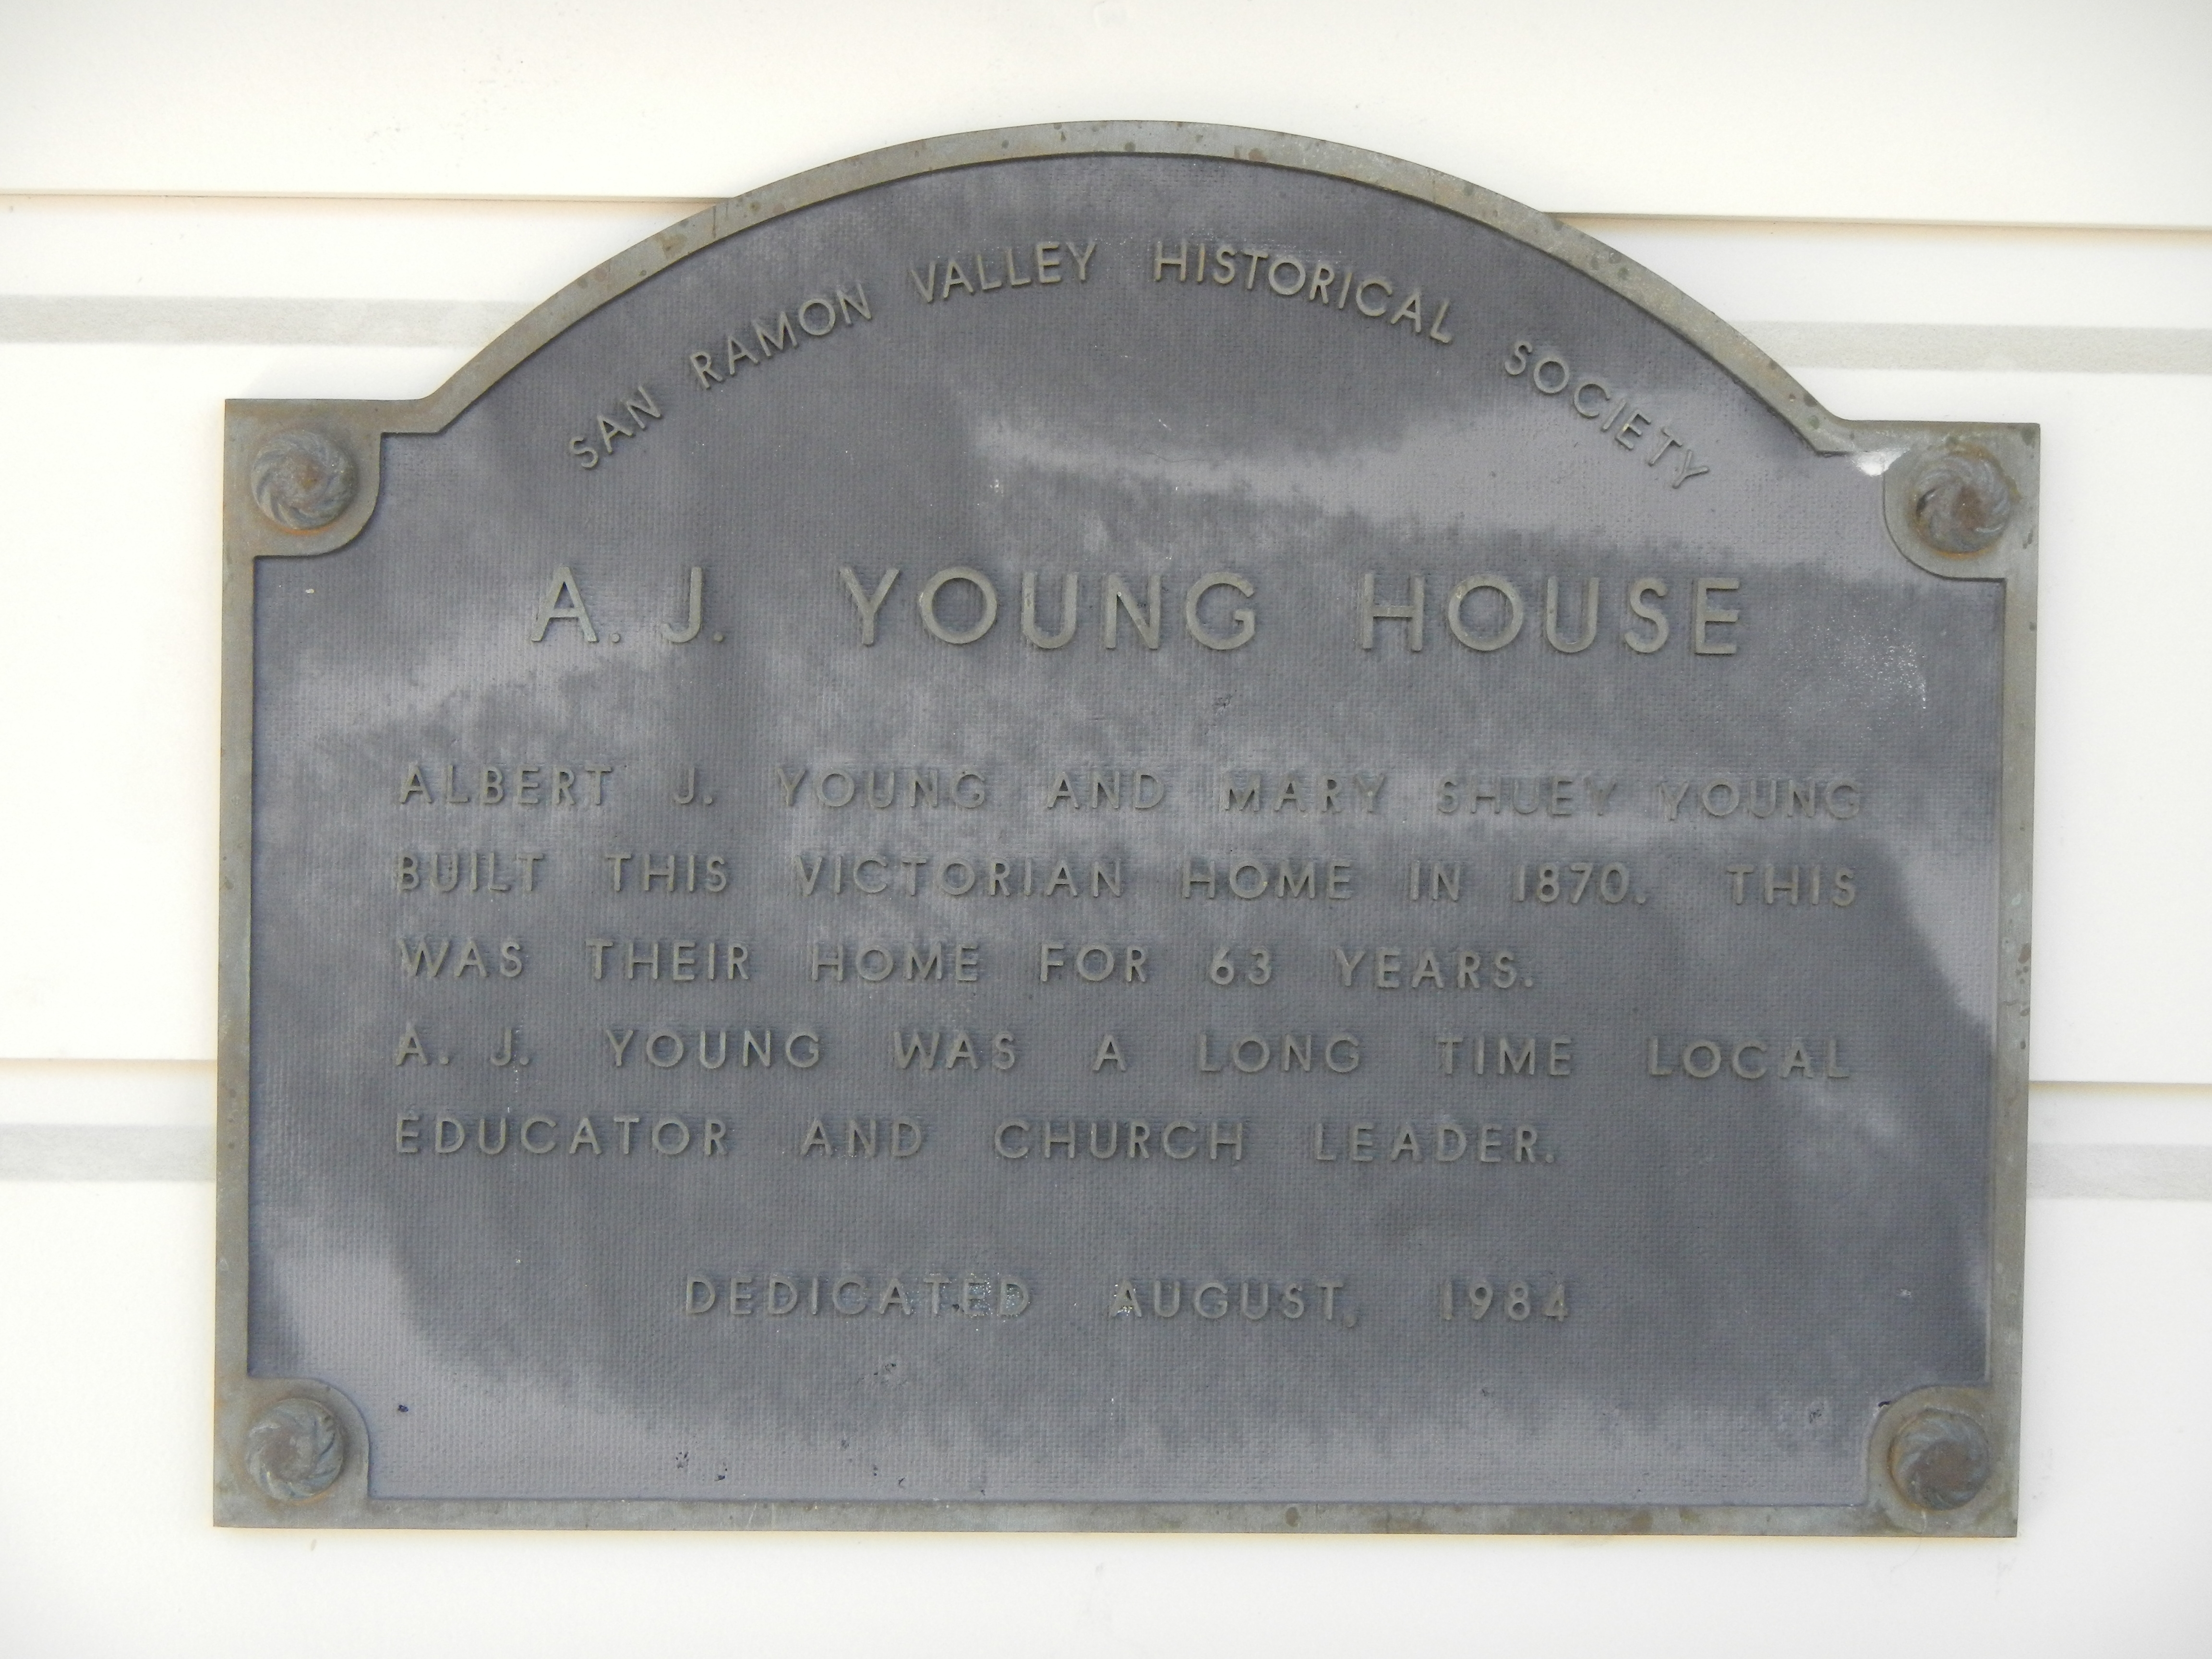 A.J. Young House Marker